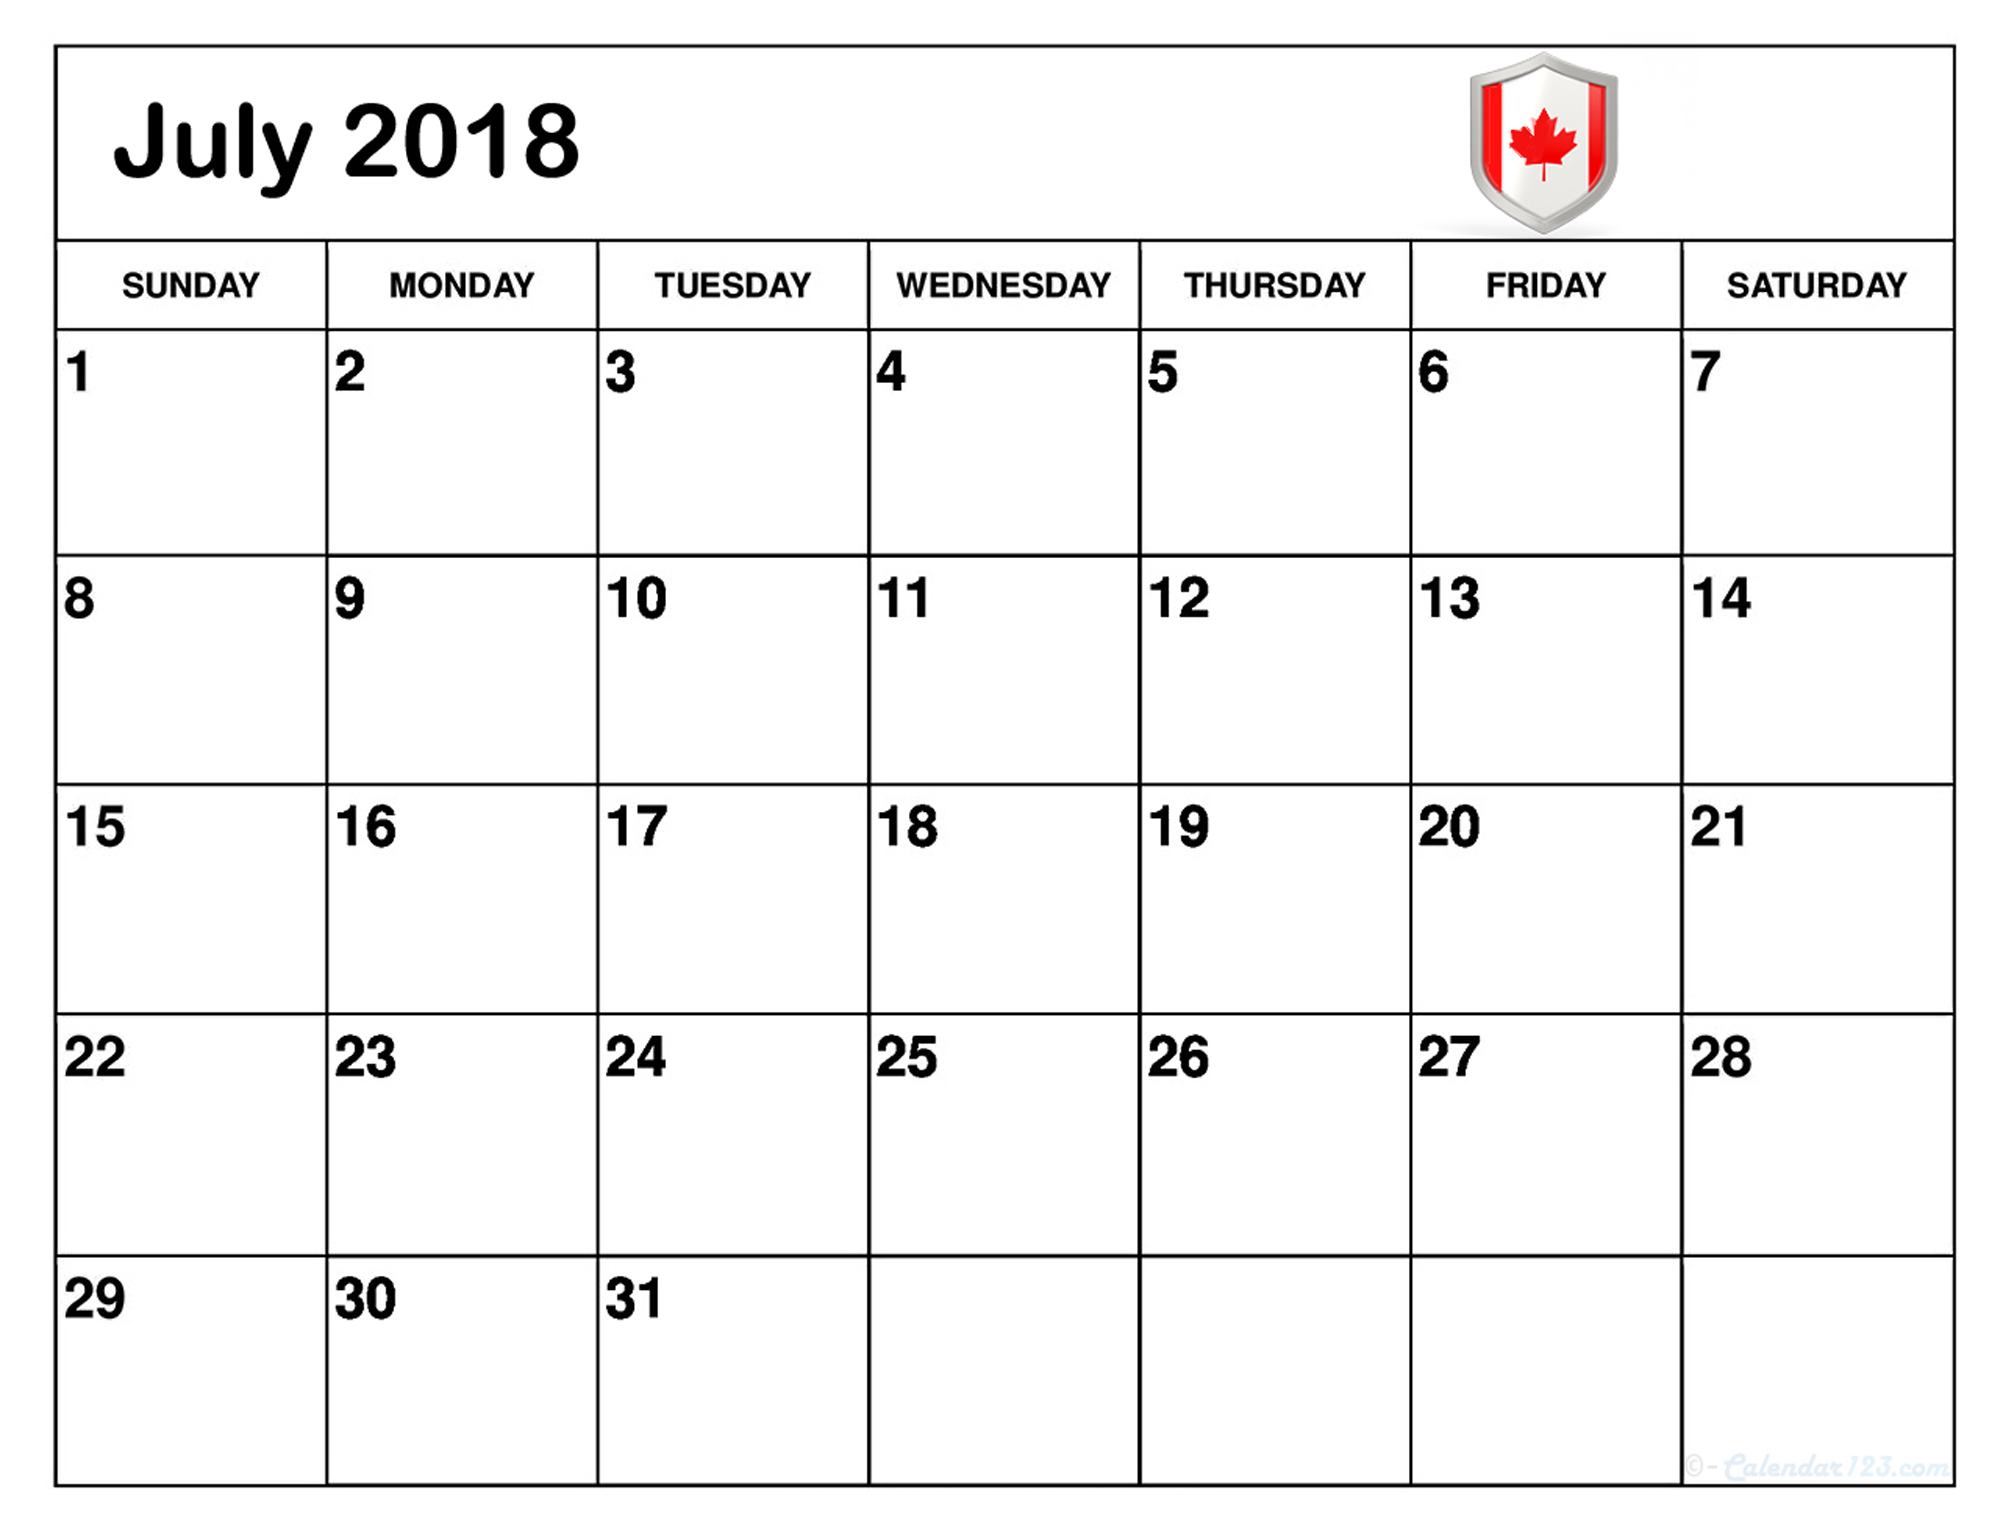 July 2018 Calendar Canada National Holidays